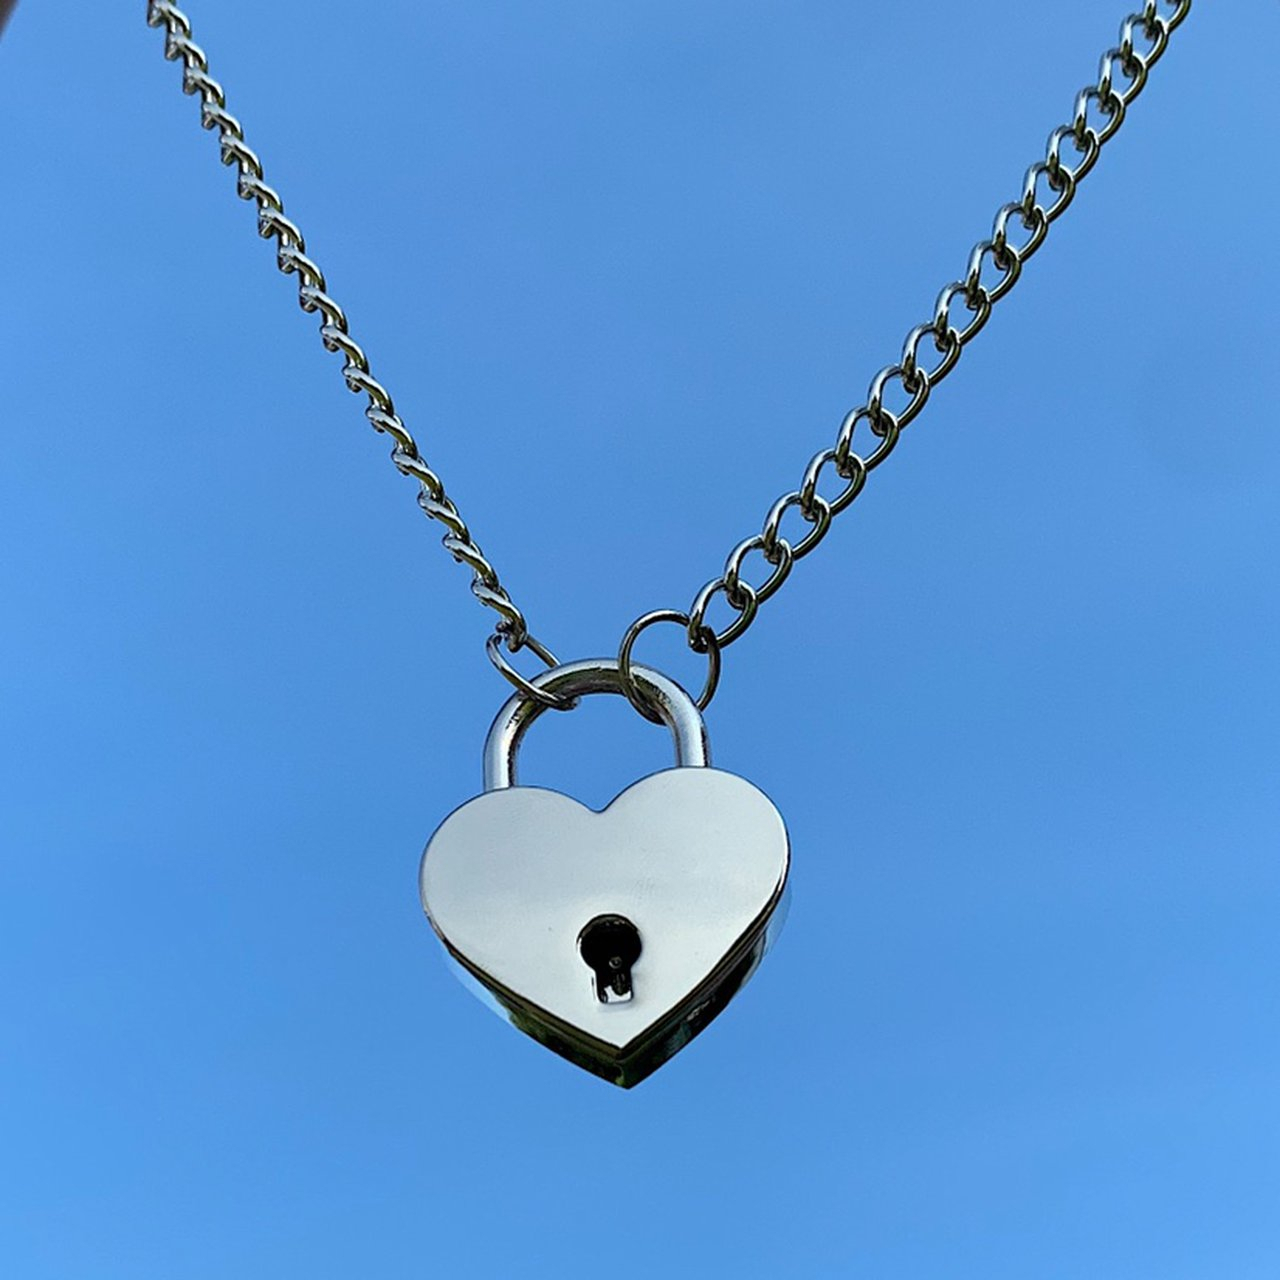 Heart Shaped Padlock Chain Necklace (View 7 of 25)